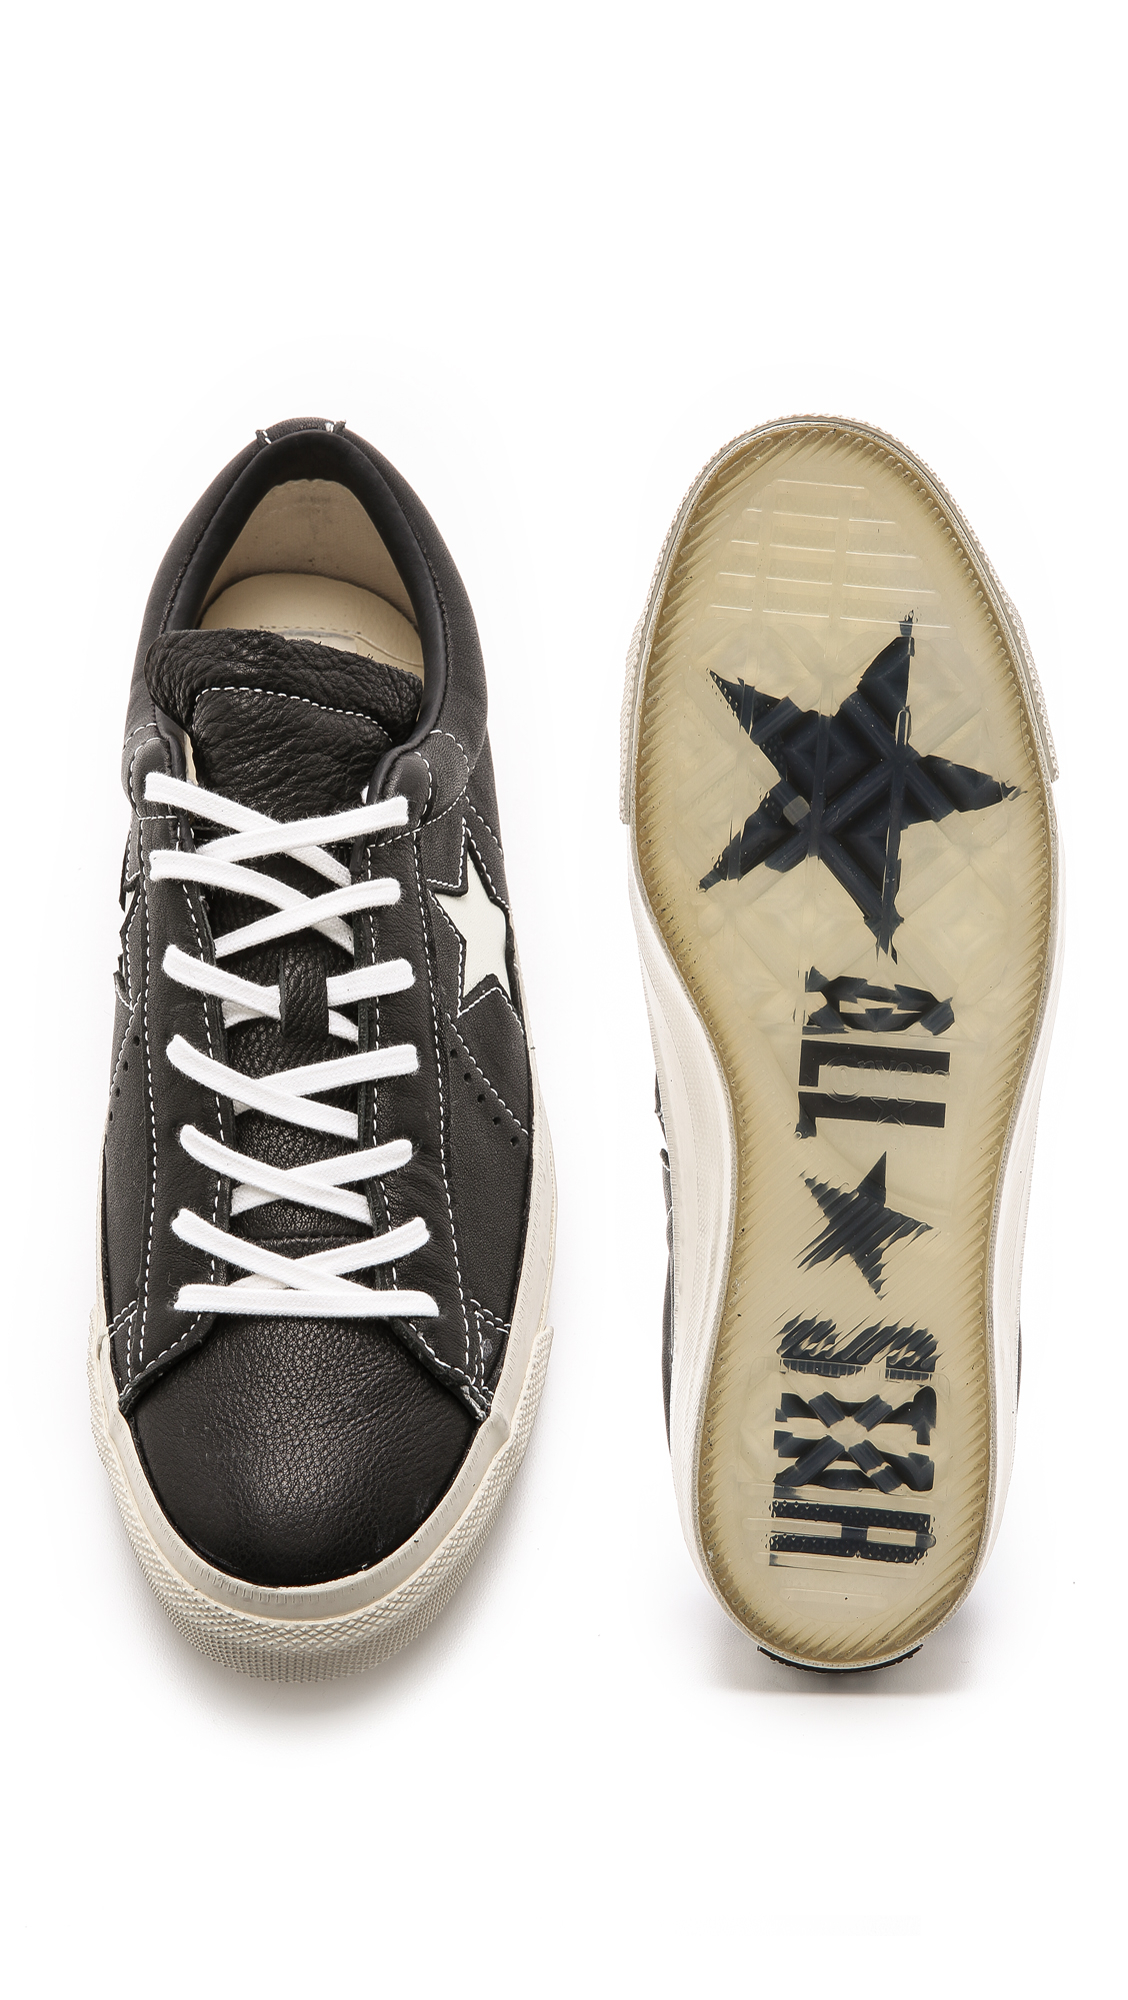 Converse One Star Shoes Leather